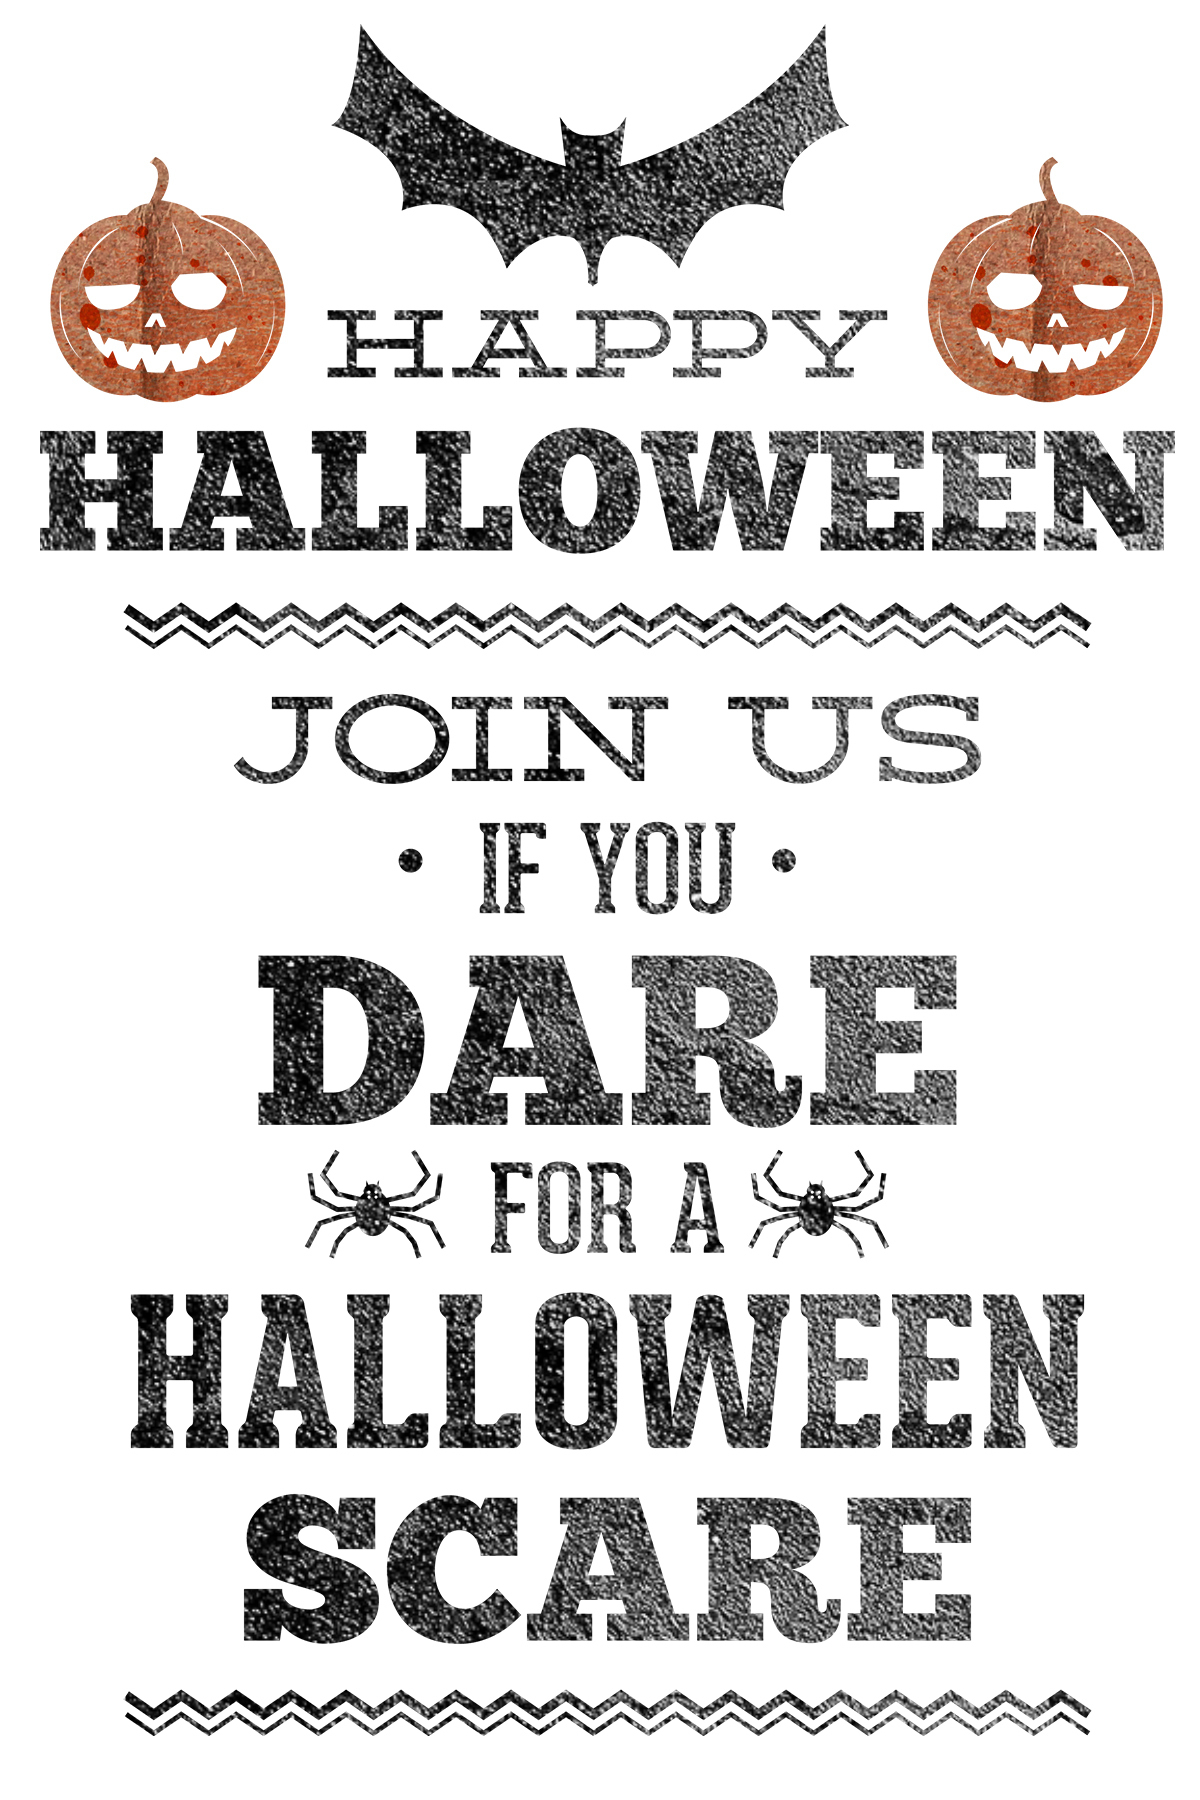 Halloween Party Pack Amazing Free Halloween Party Invitations - Halloween Invitations Free Printable Black And White